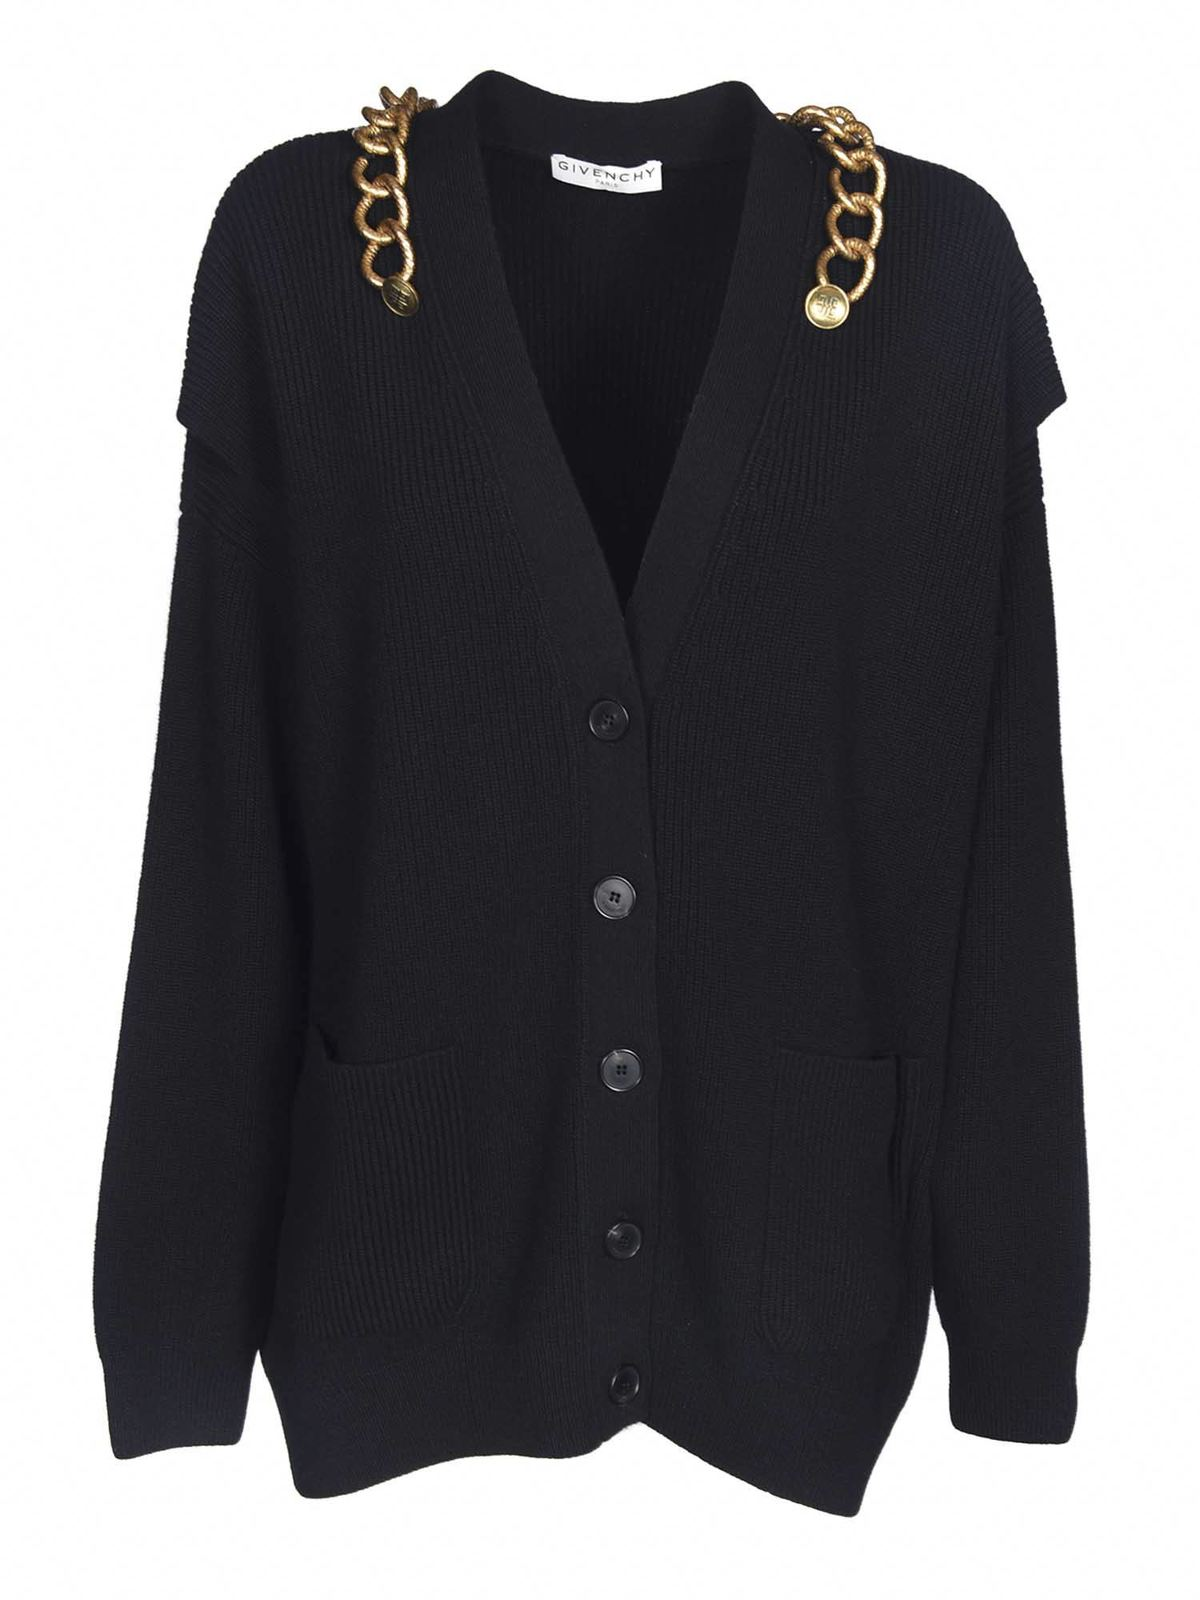 Givenchy CHAIN CARDIGAN IN BLACK